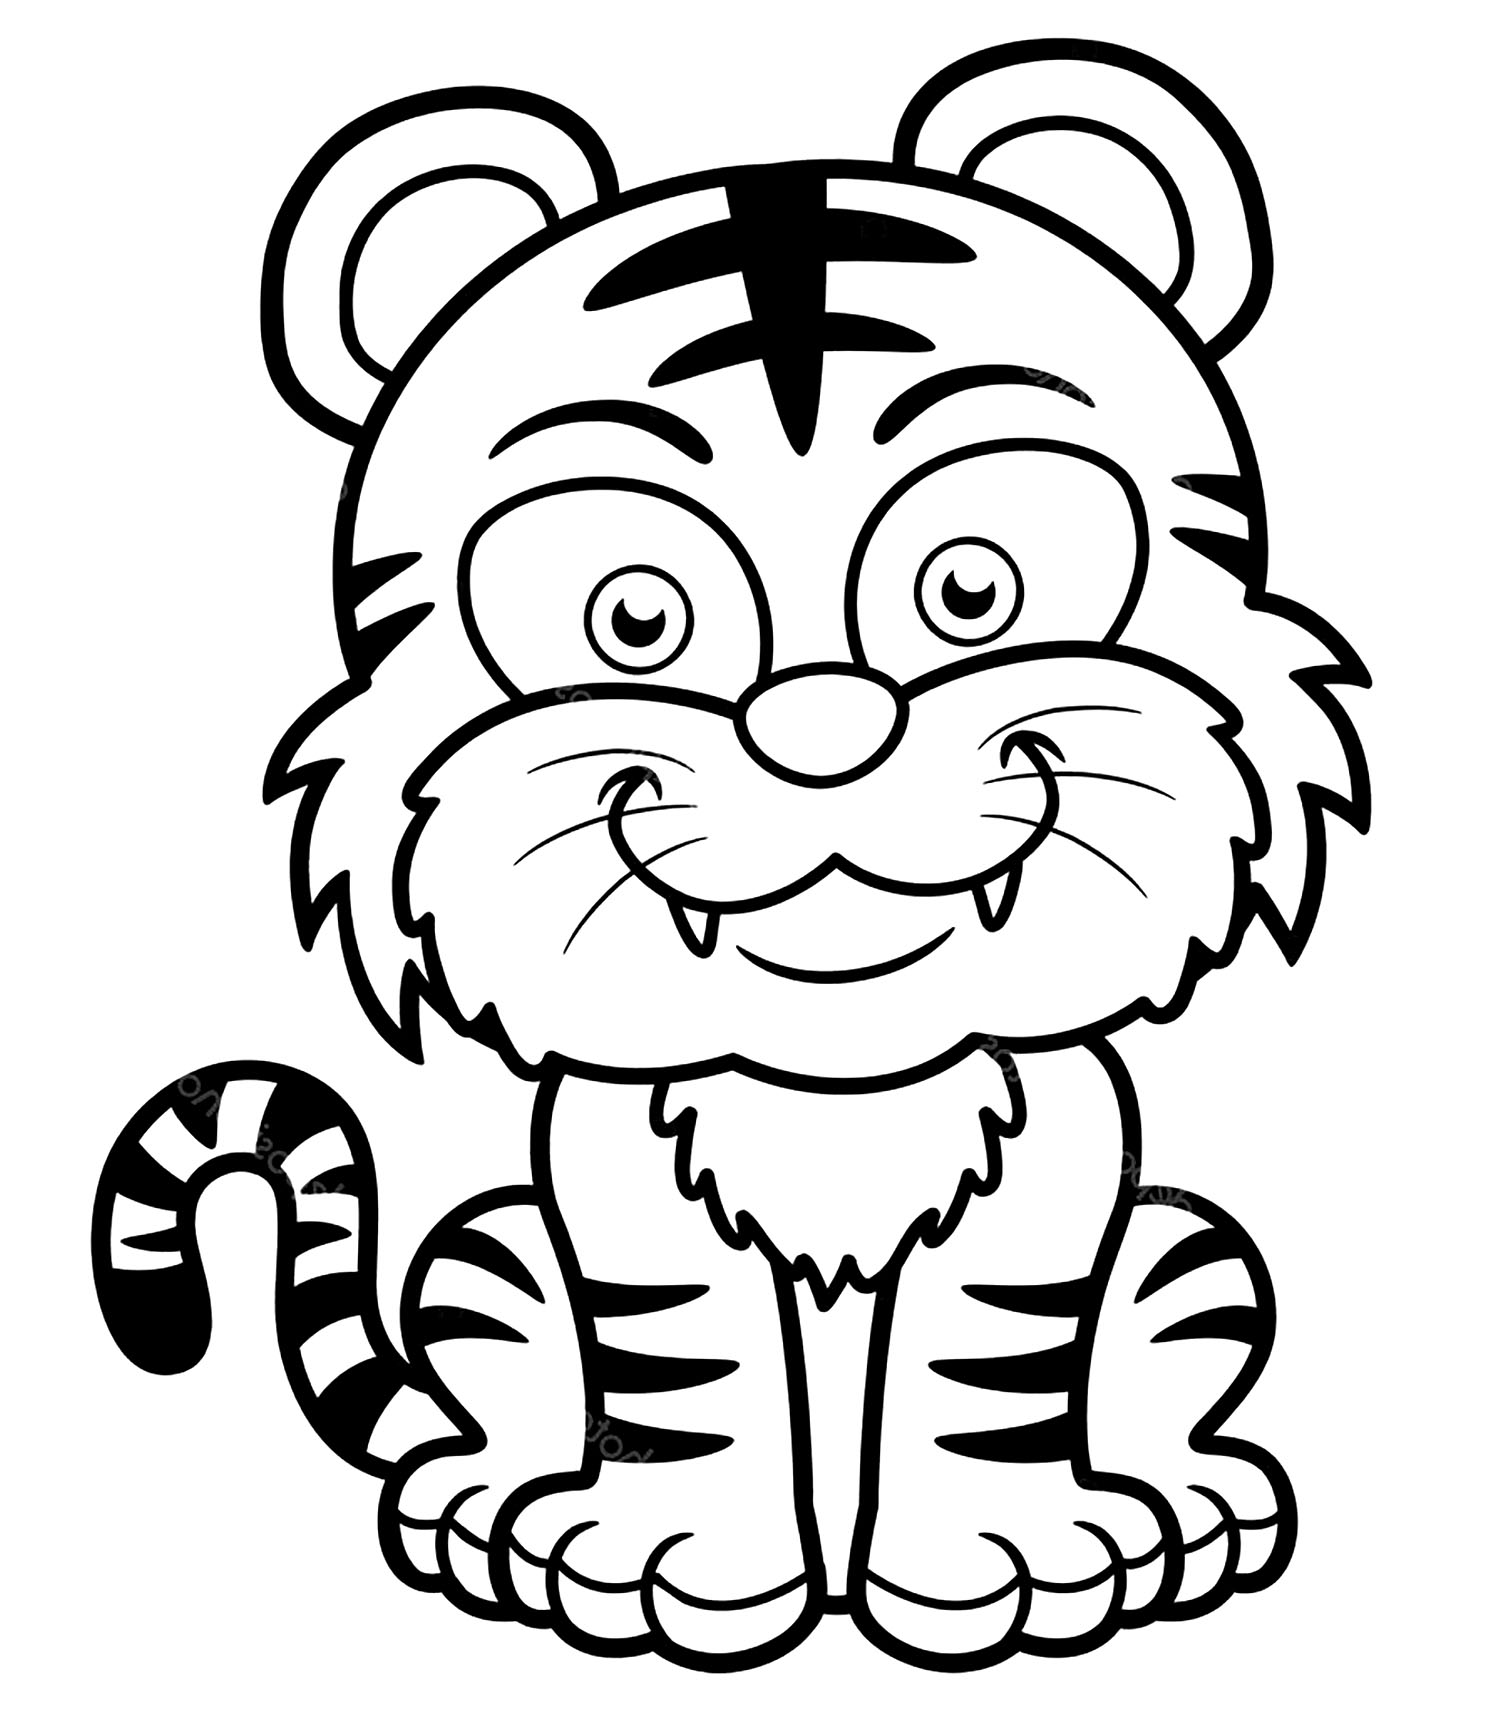 Tigers Free To Color For Children